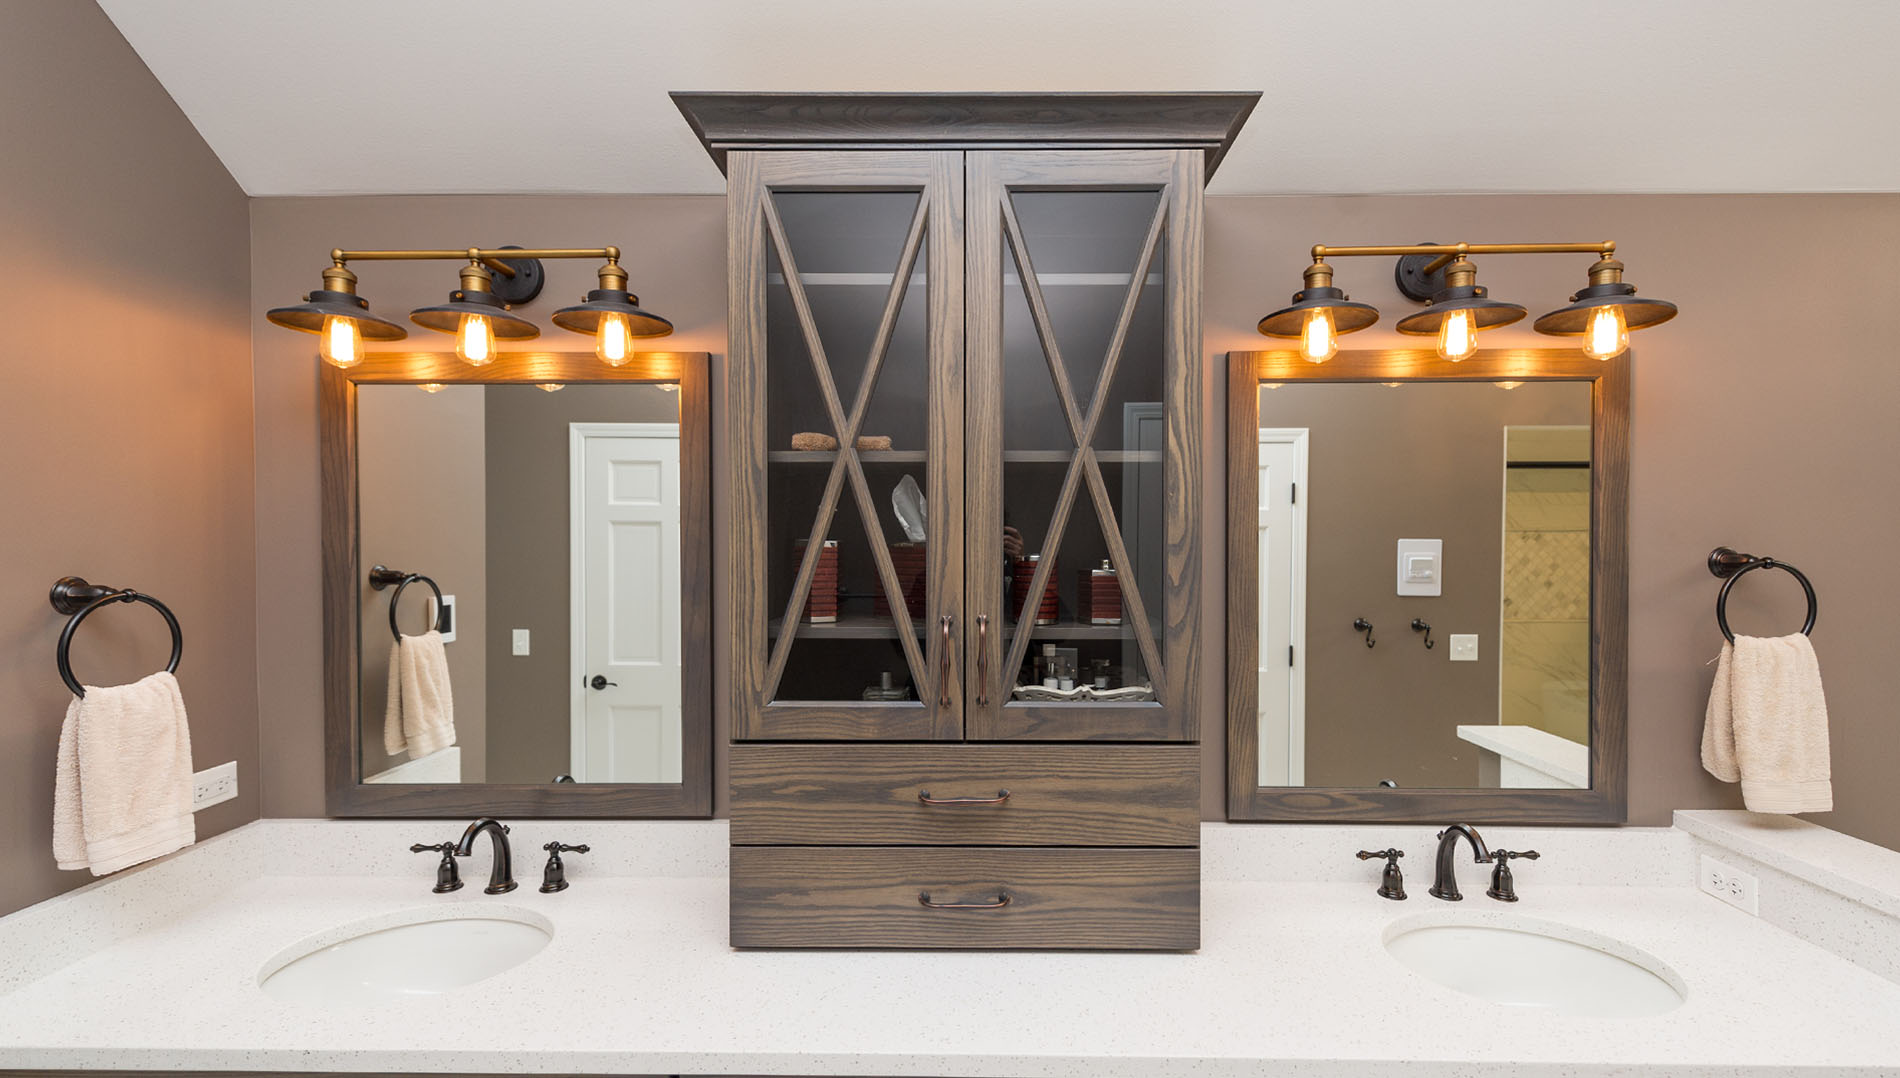 Wondrous In Winding Creek Part 1 Master Bath River Oak Cabinetry Design